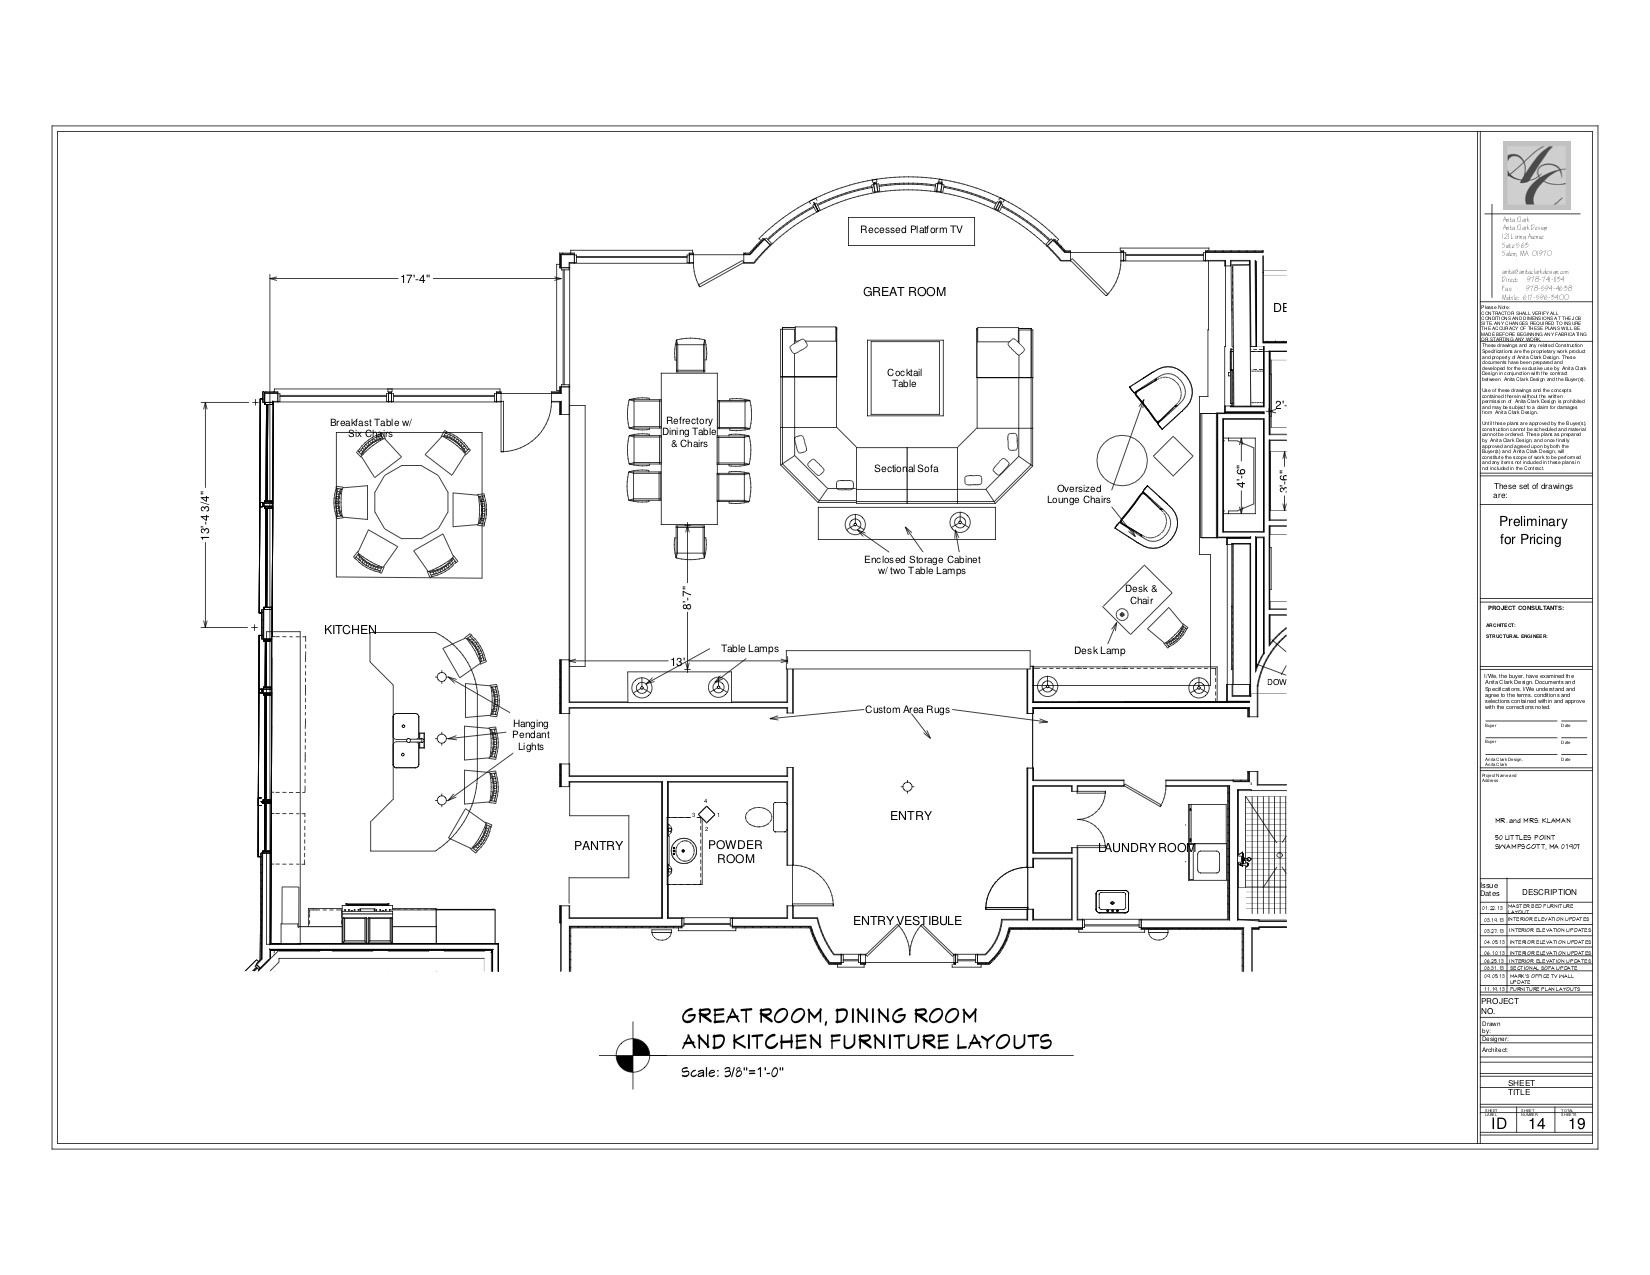 Proposed Great Room and Kitchen Furniture Layouts